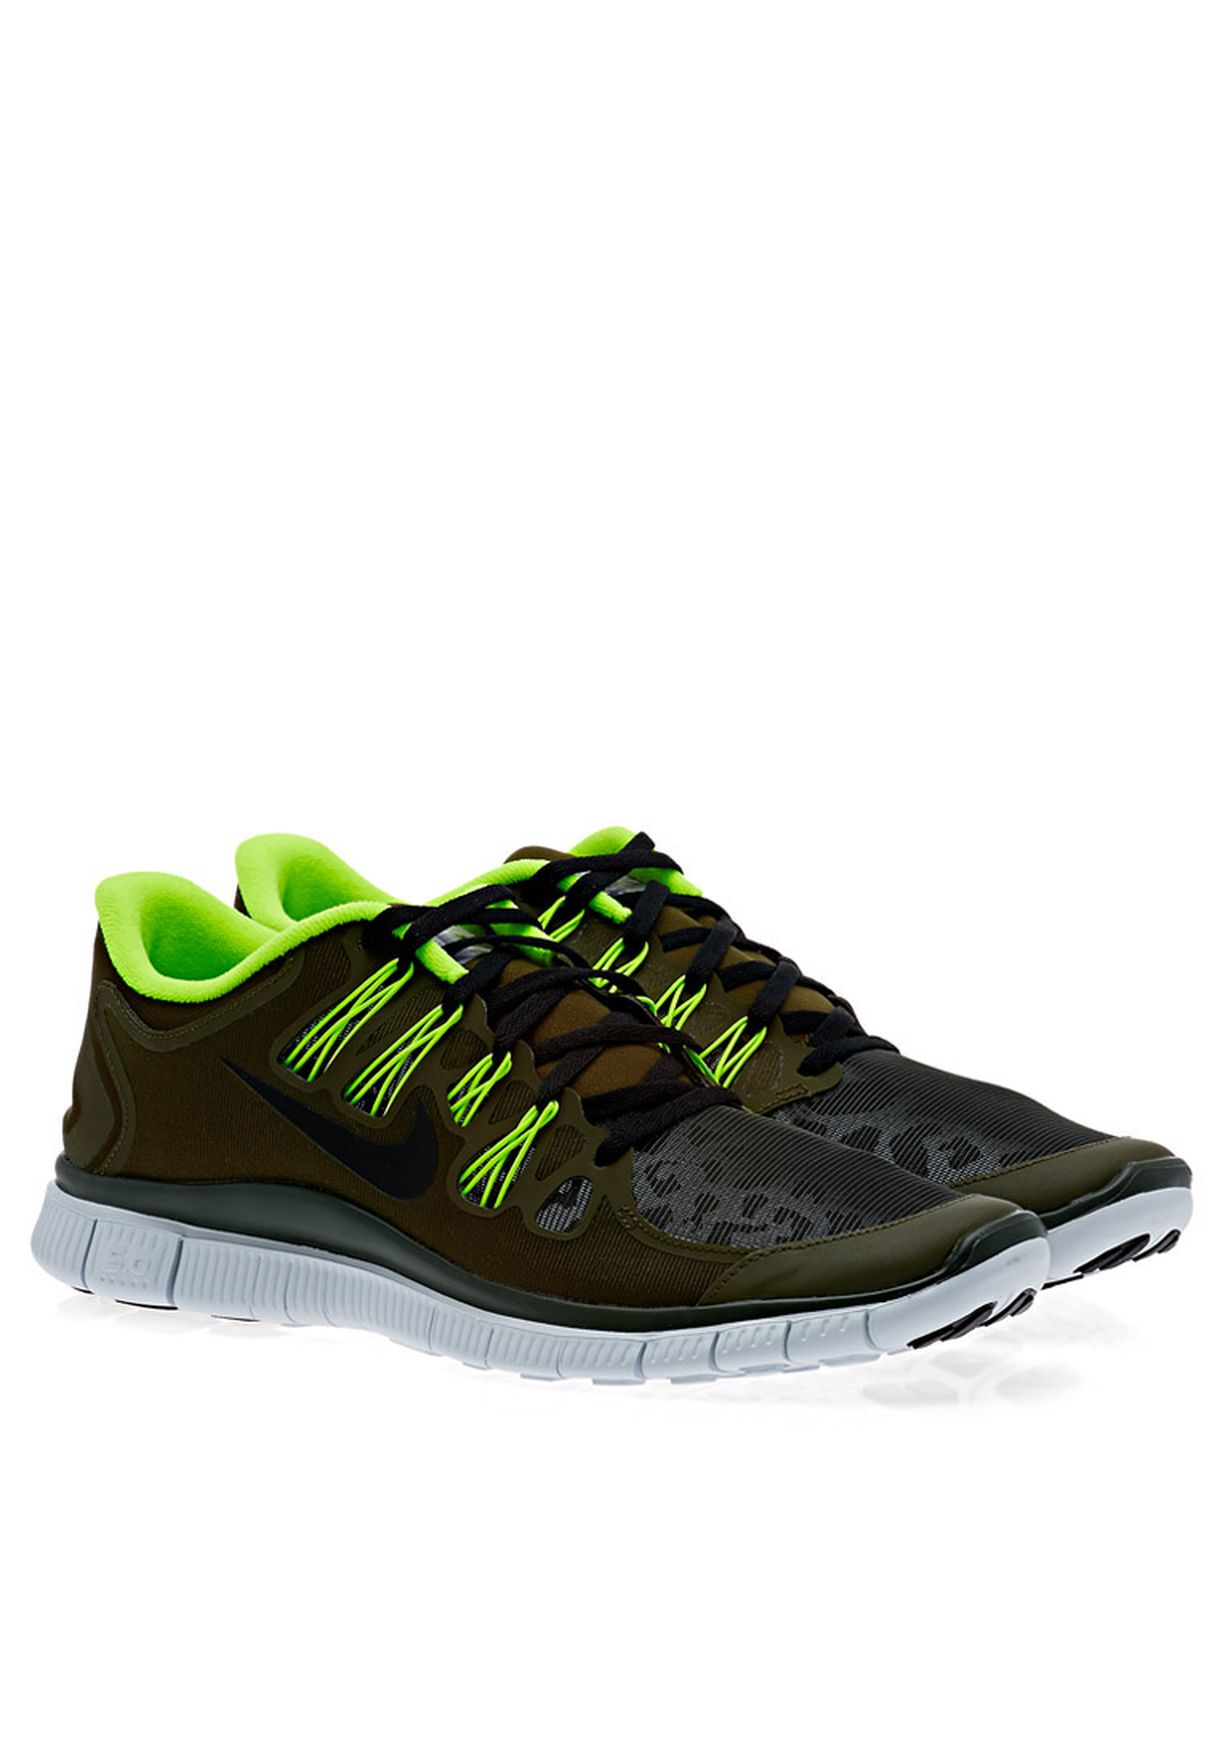 6ef7c17c009bf Nike. Nike Free 5.0. 59.93 KWD 28.11 KWD. Fast Delivery. Size. 41  42  43   44 ...